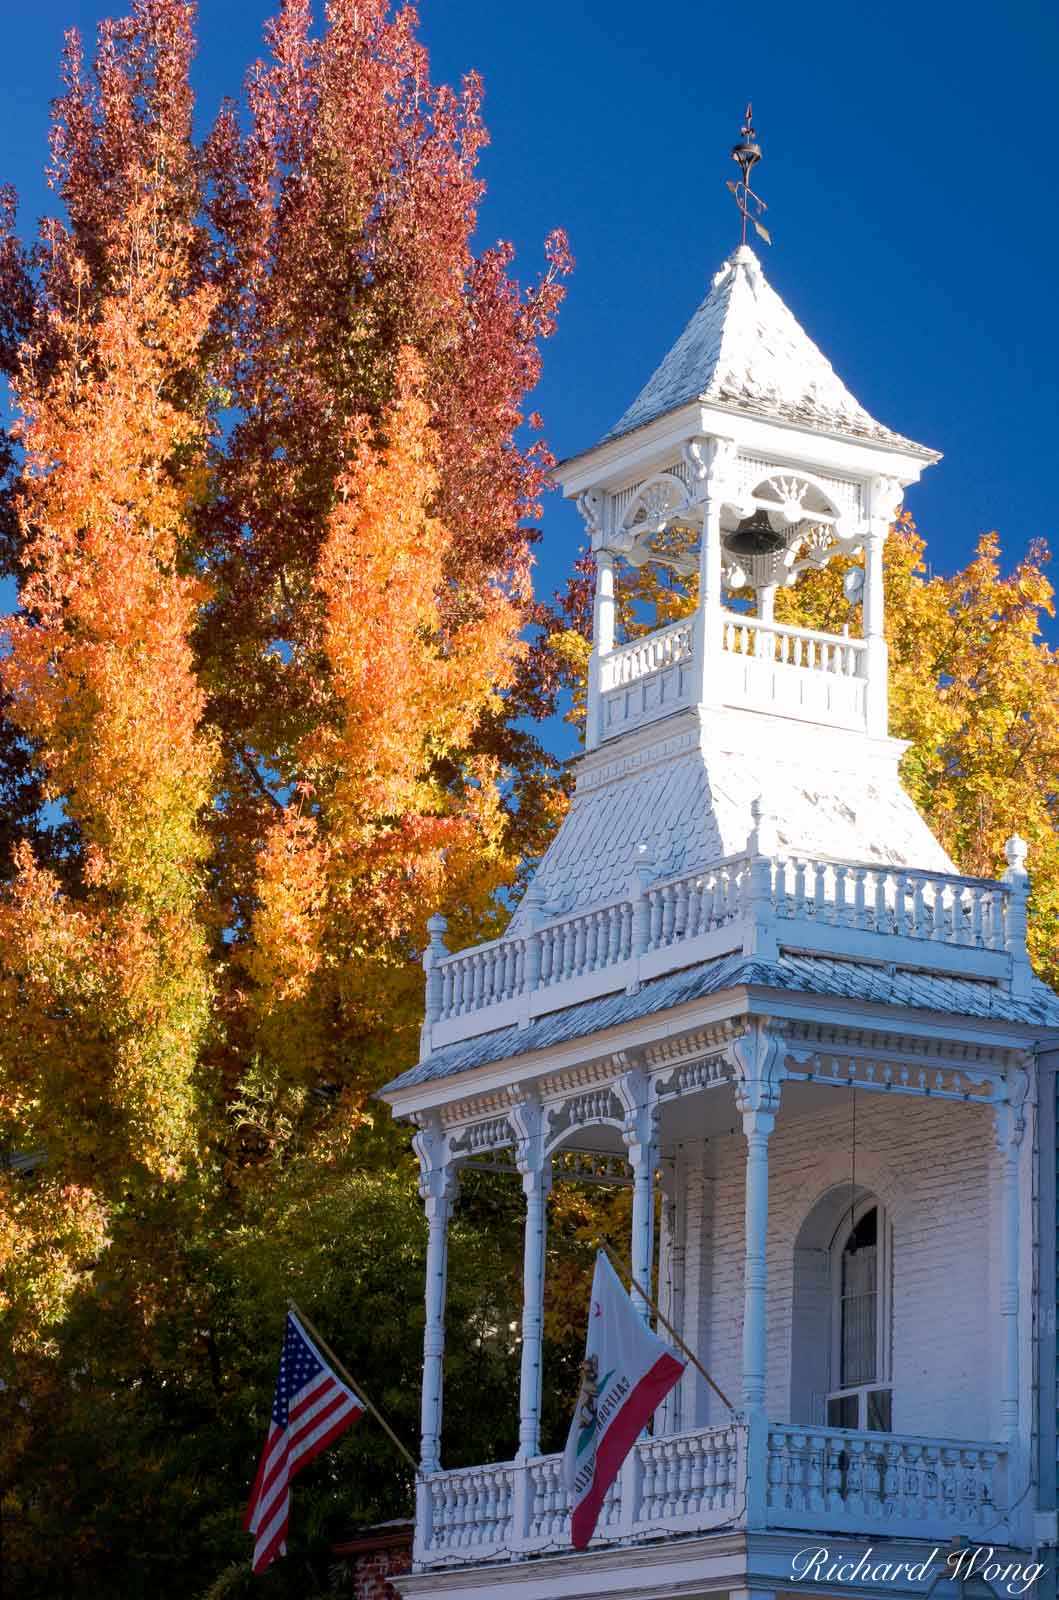 Historic Firehouse Number 1 in Fall Season, Nevada City, California, photo, photo